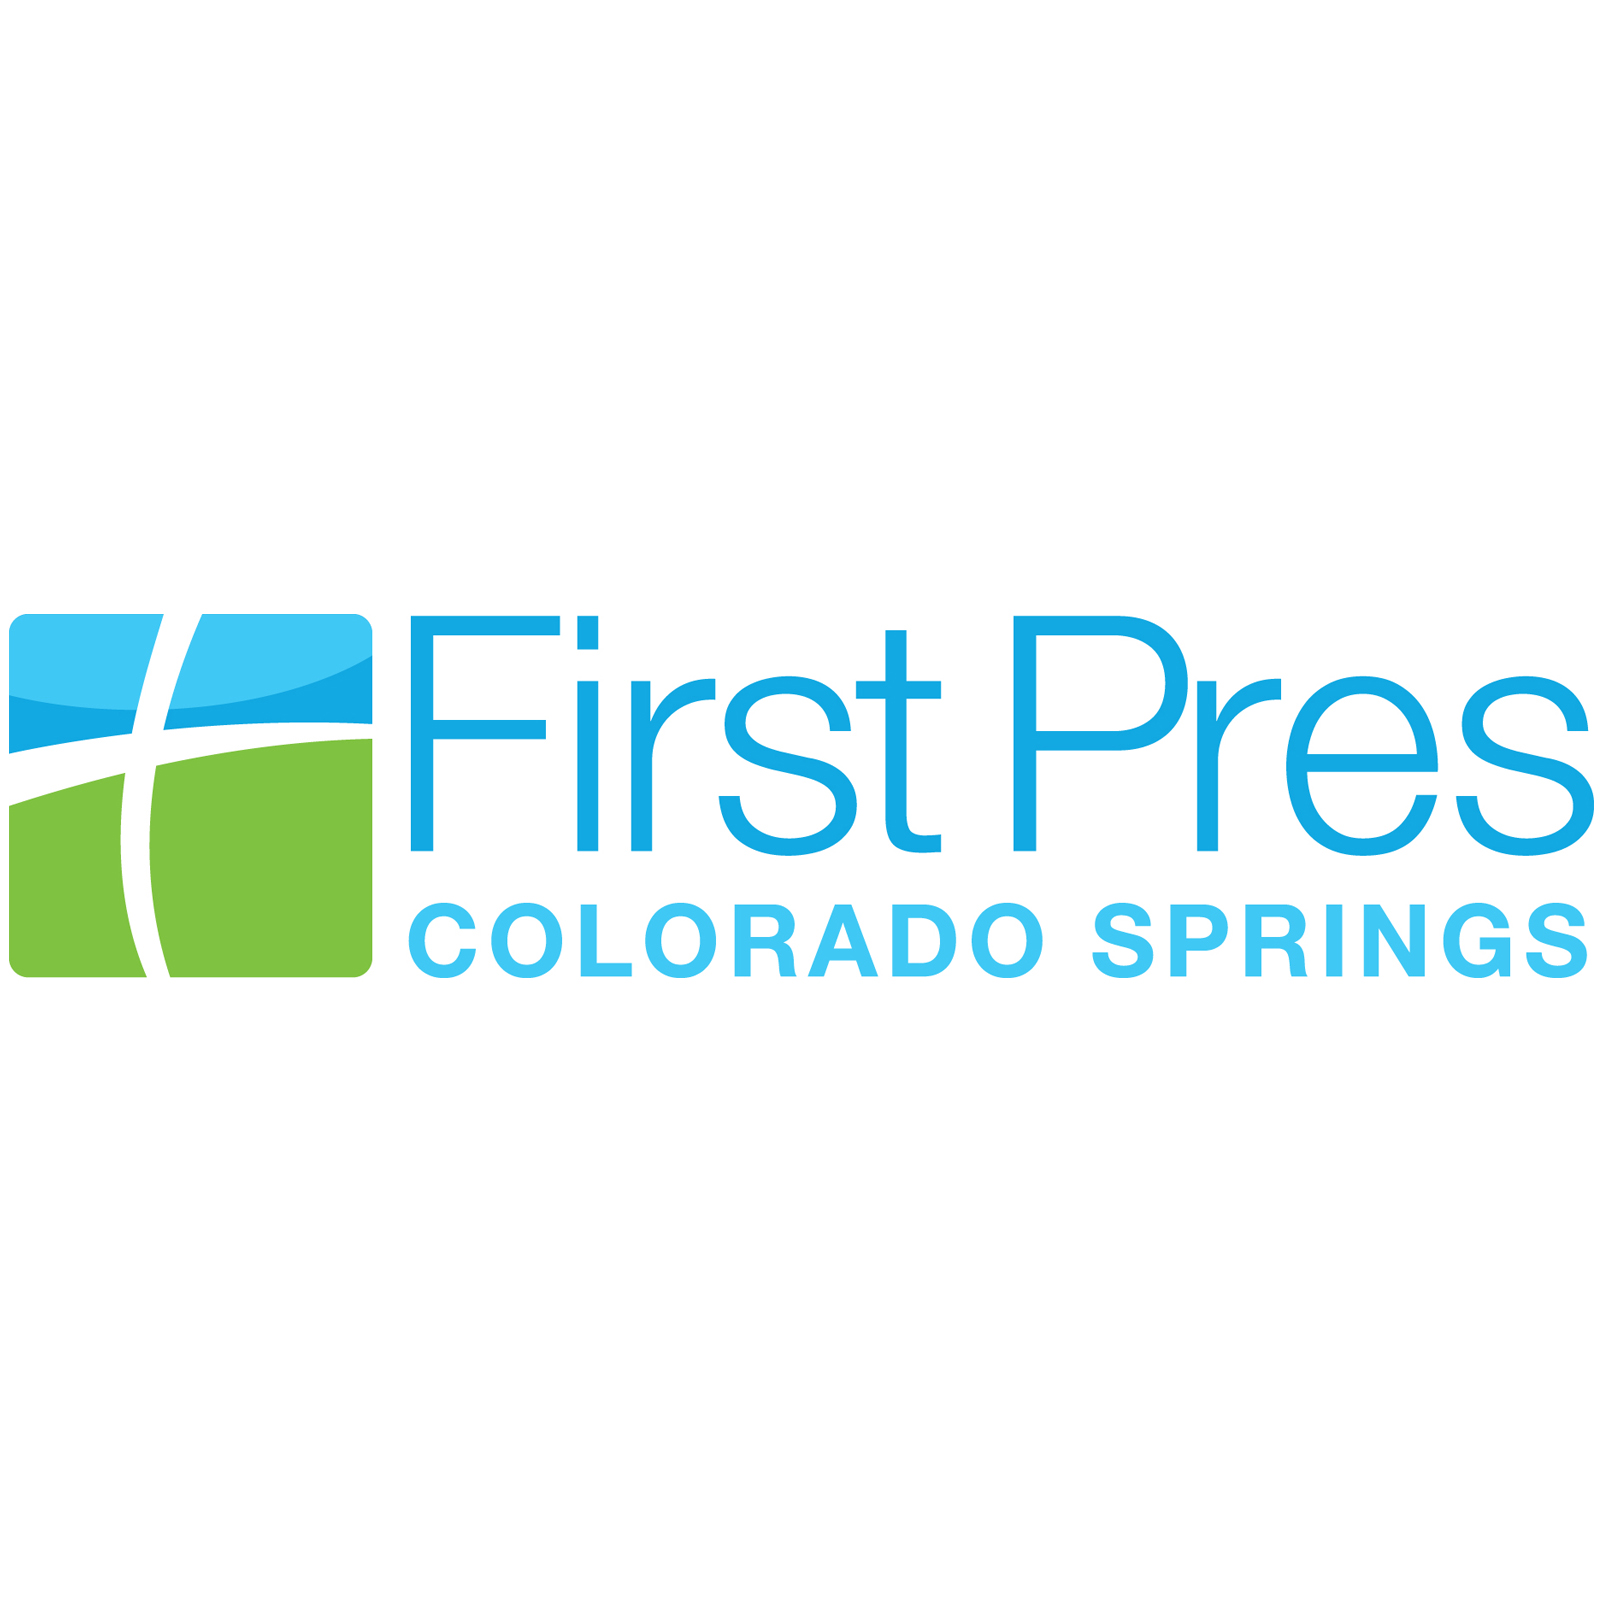 First Presbyterian Church | Colorado Springs Sermons